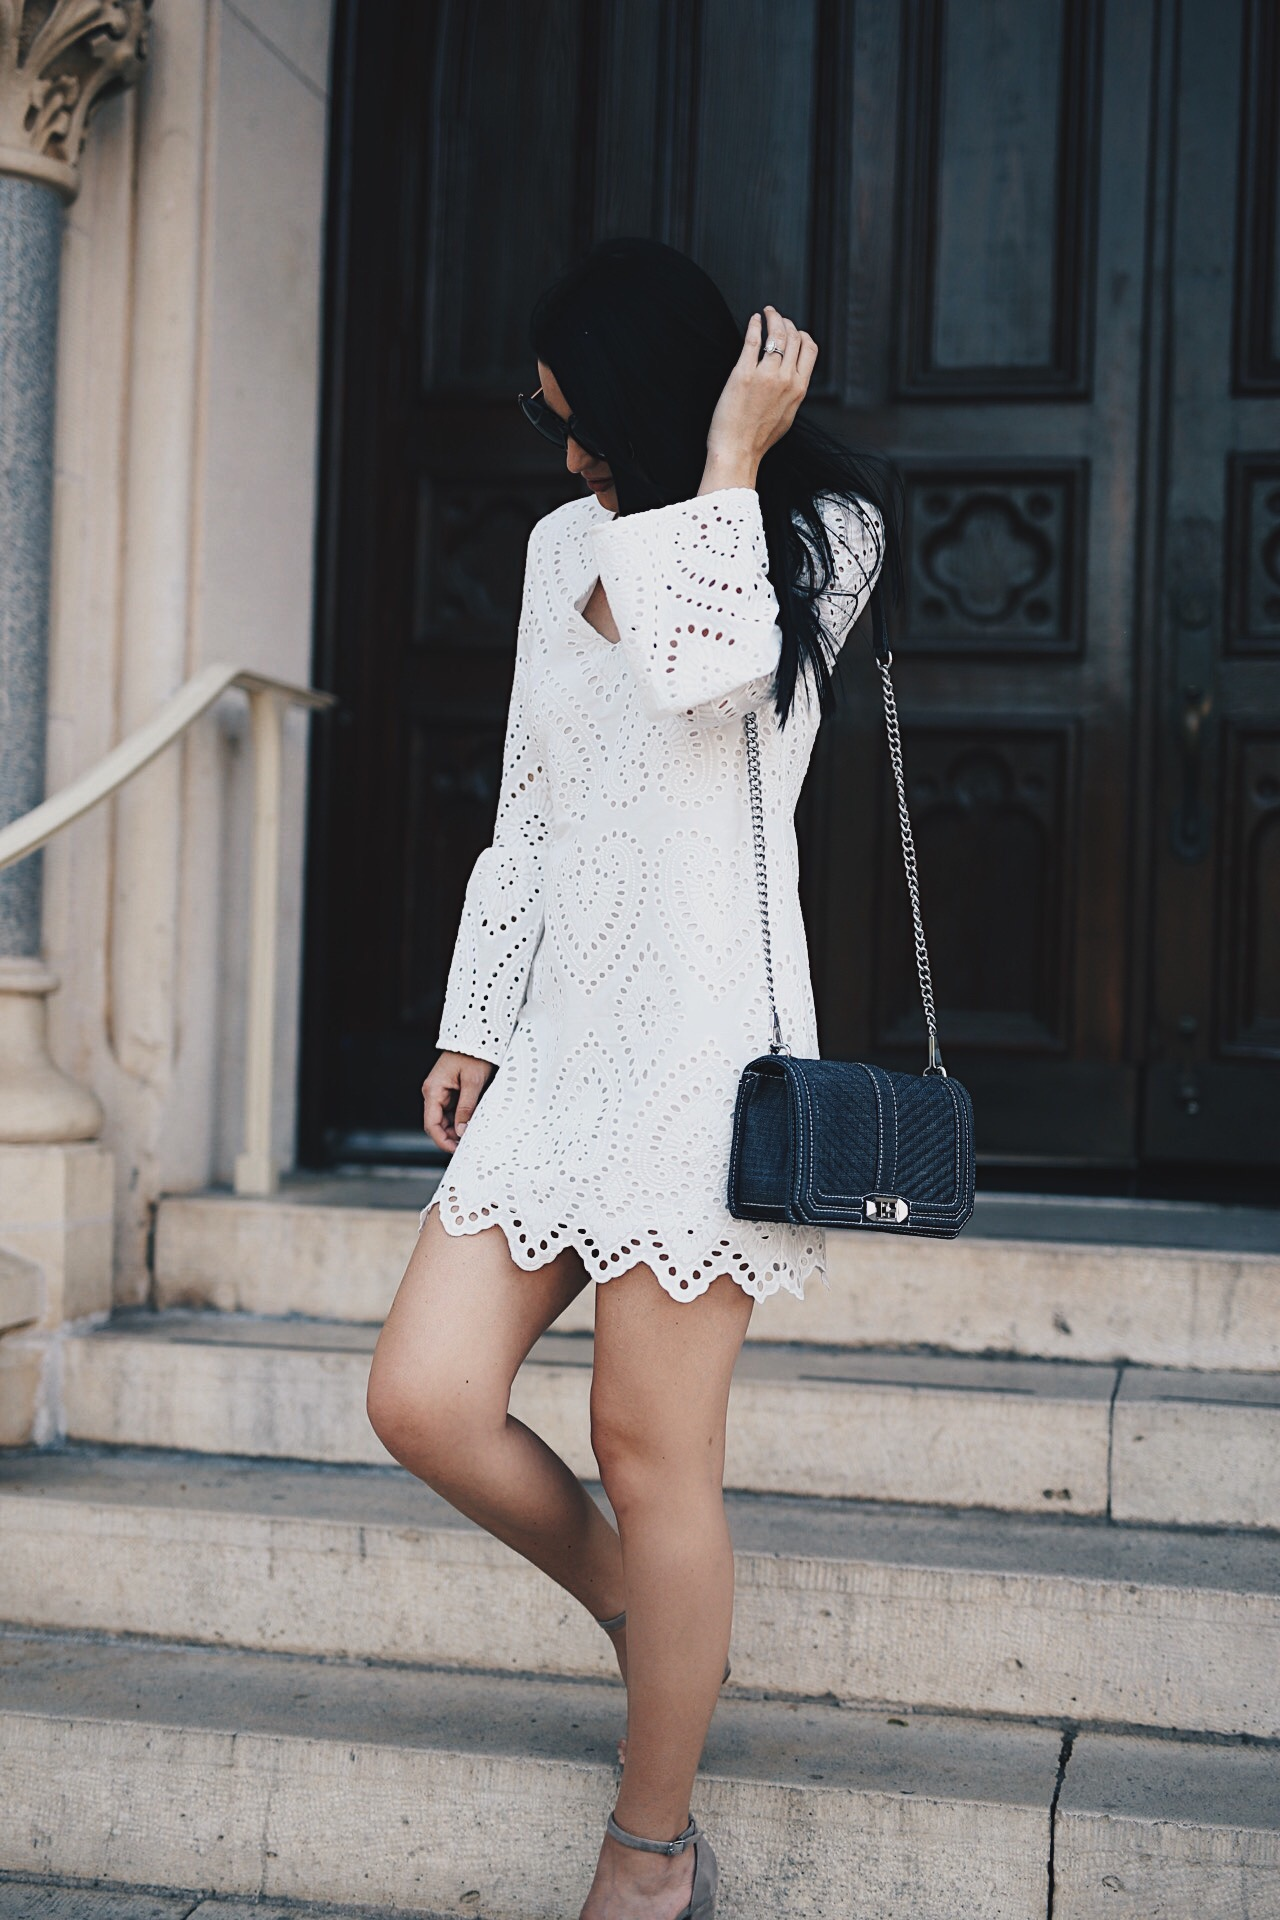 Ashley of DTKAustin has rounded up her favorite dresses for all of your Easter festivities and Easter church service. Click for more images and details to be the best dressed.